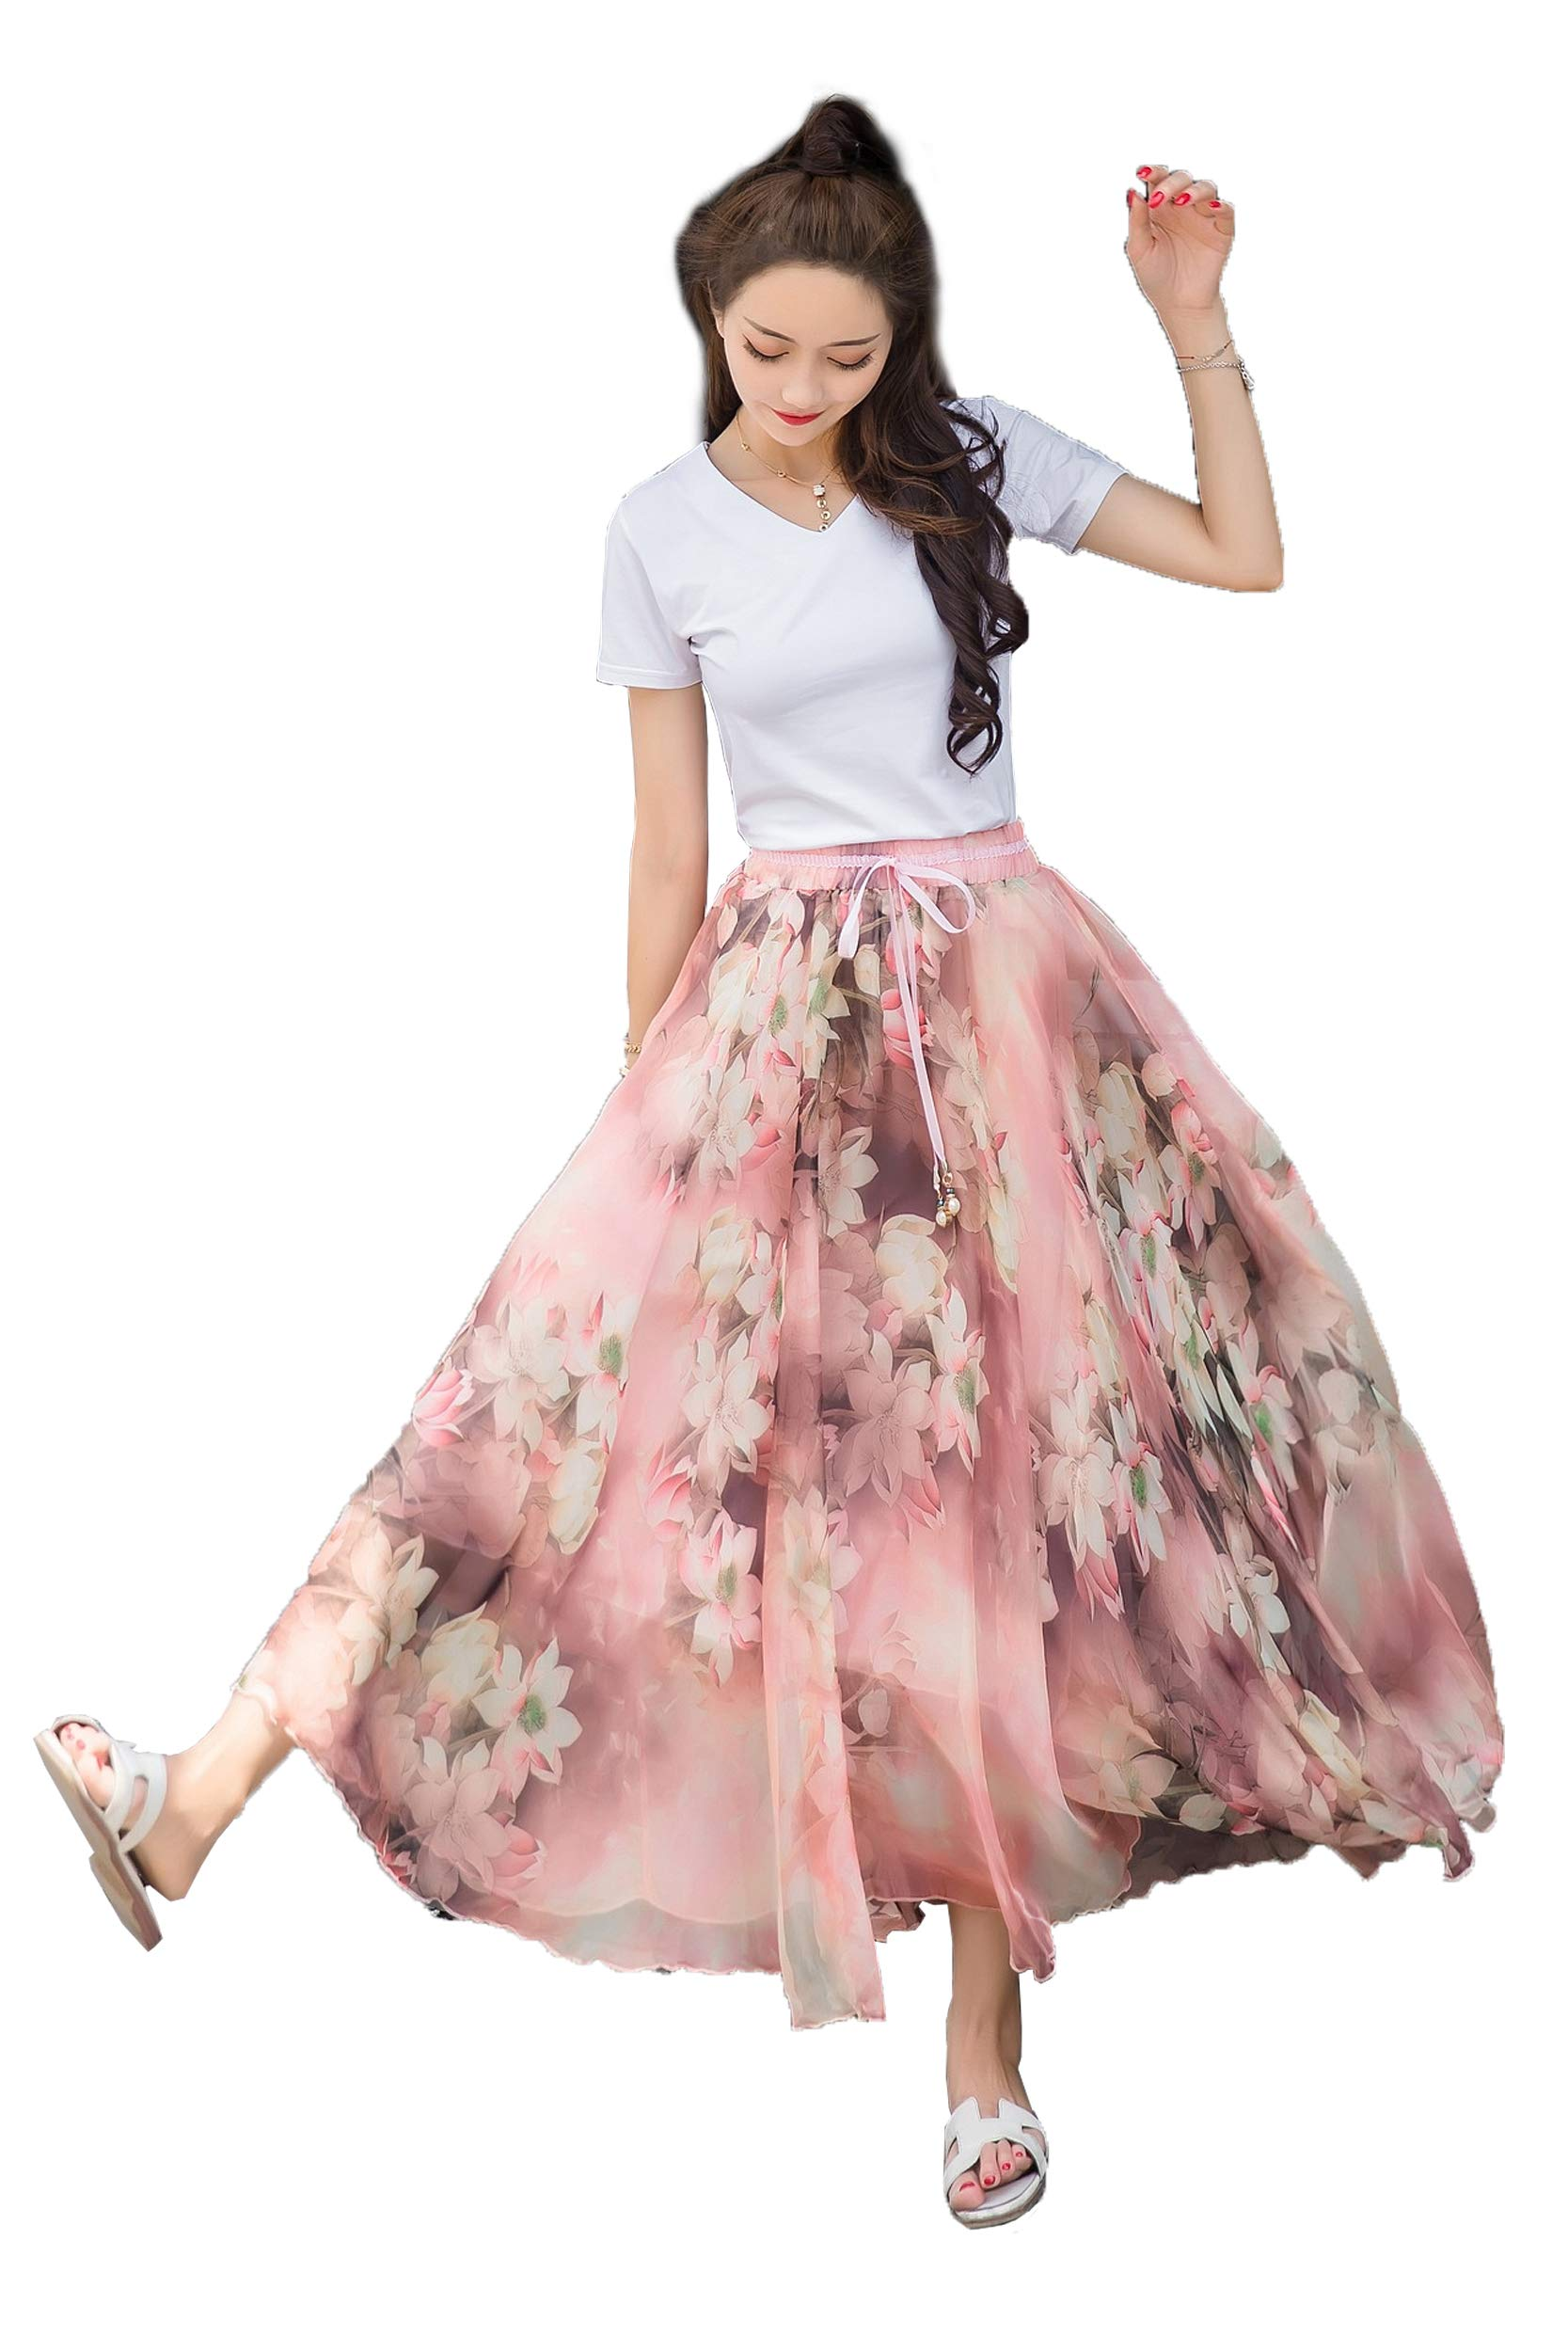 Women's Pleated Chiffon Renaissance Maxi Skirt High Waist Peasant Mexican Long Hippie Indian/Thailand Bottom Dress